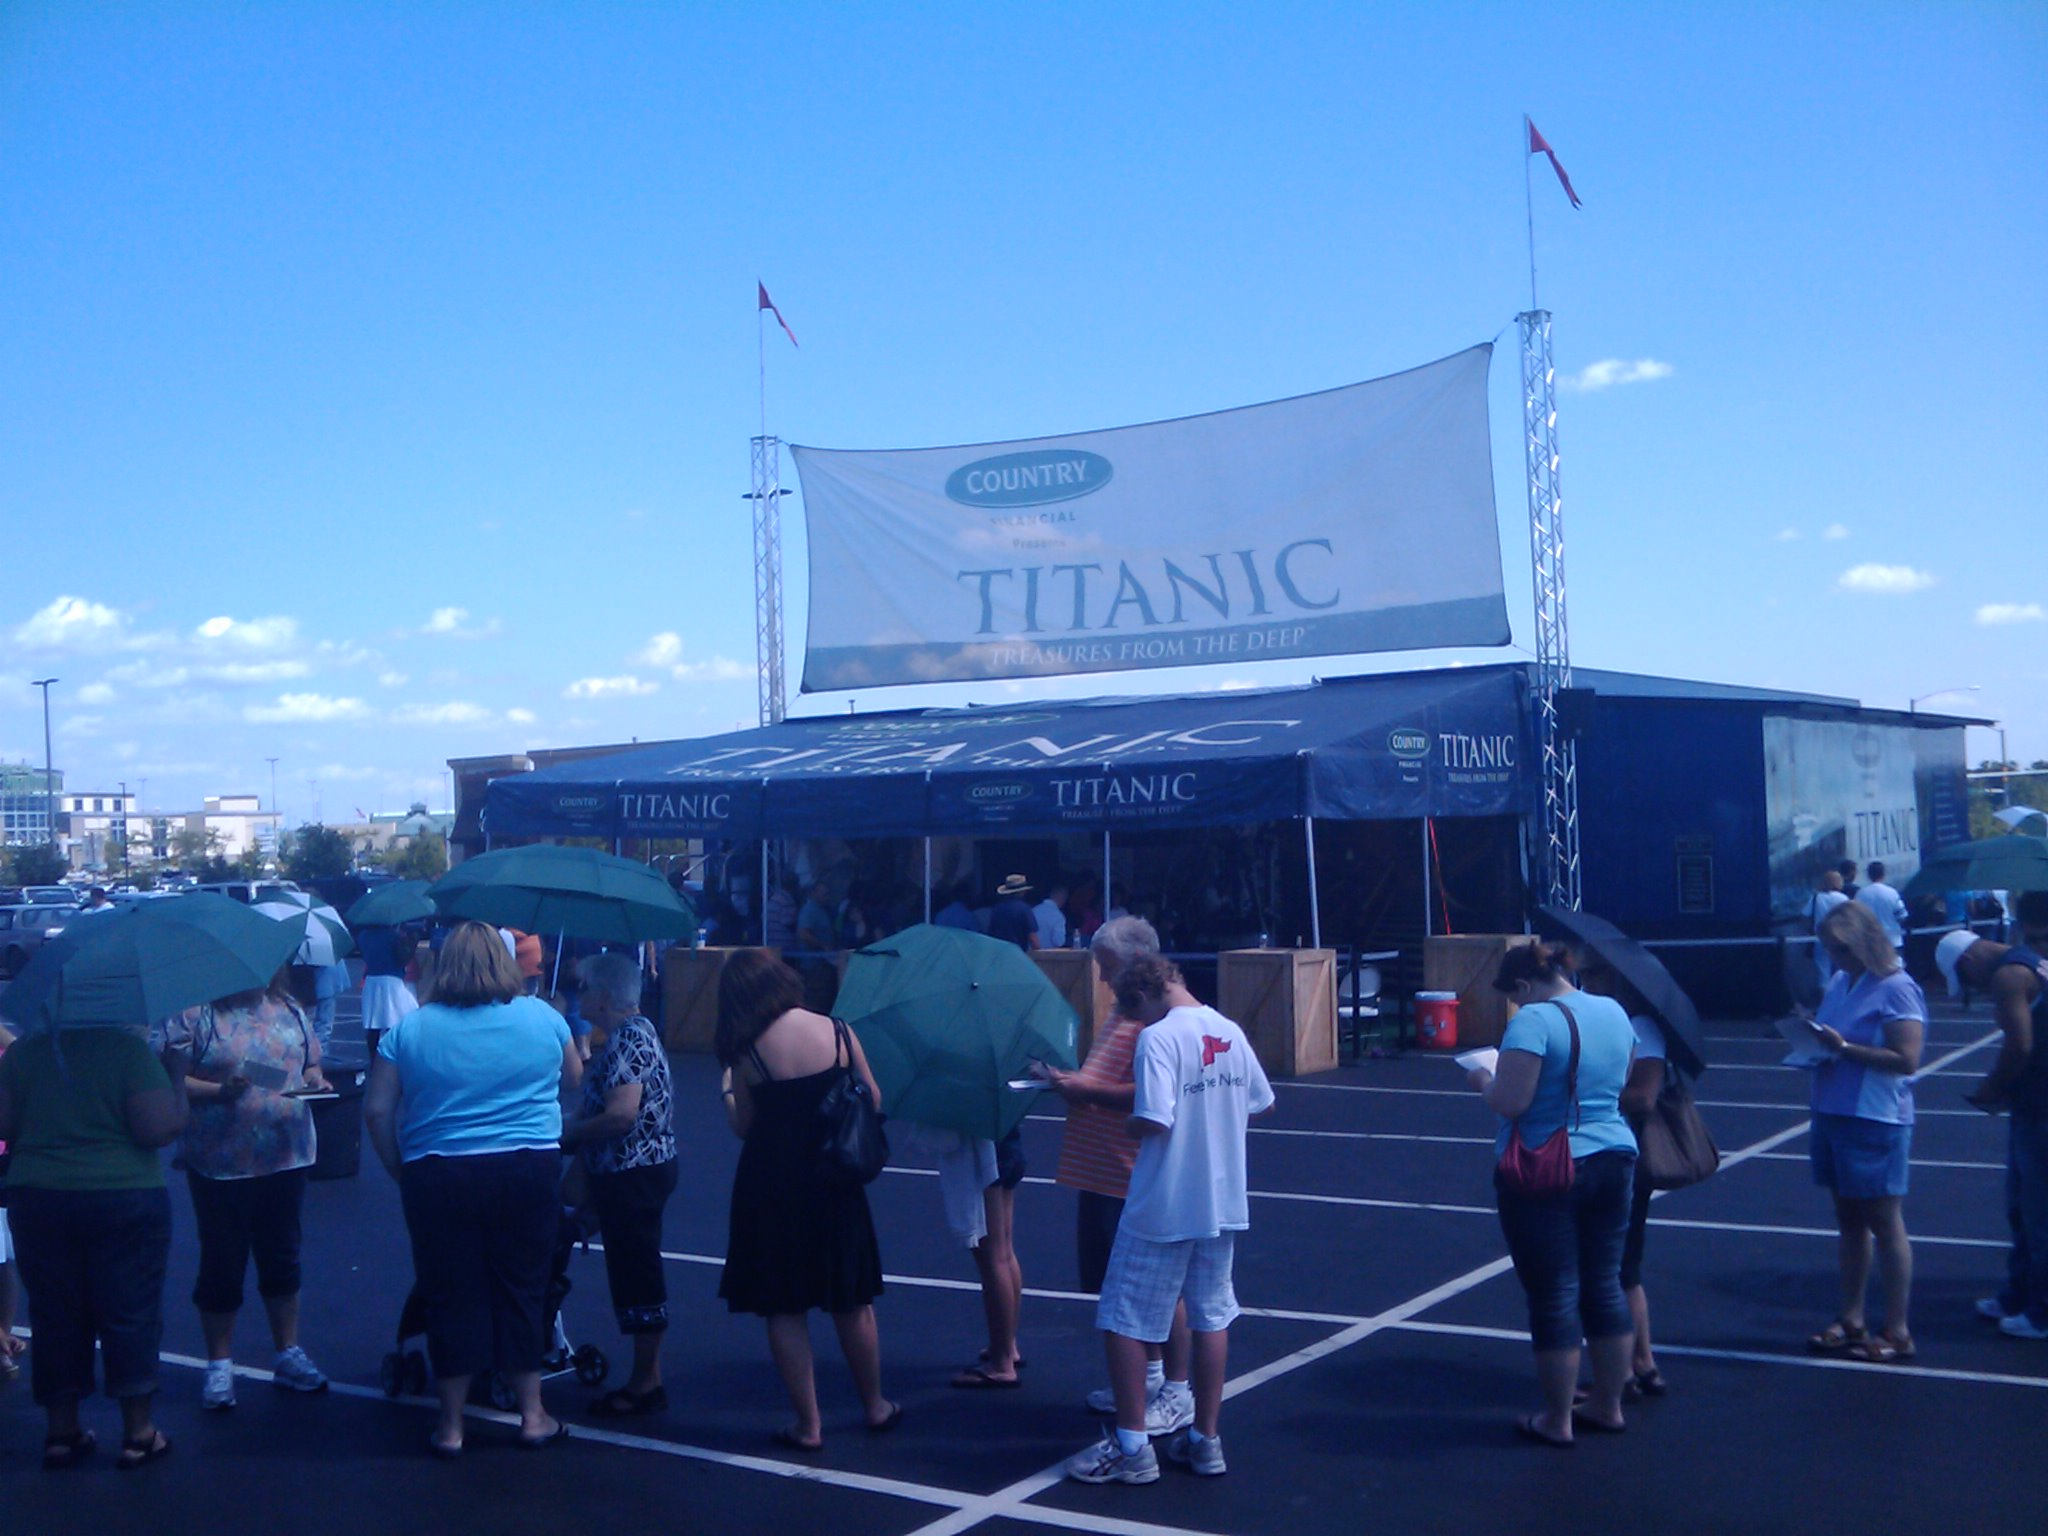 Country financial presents Titanic treasures of the deep